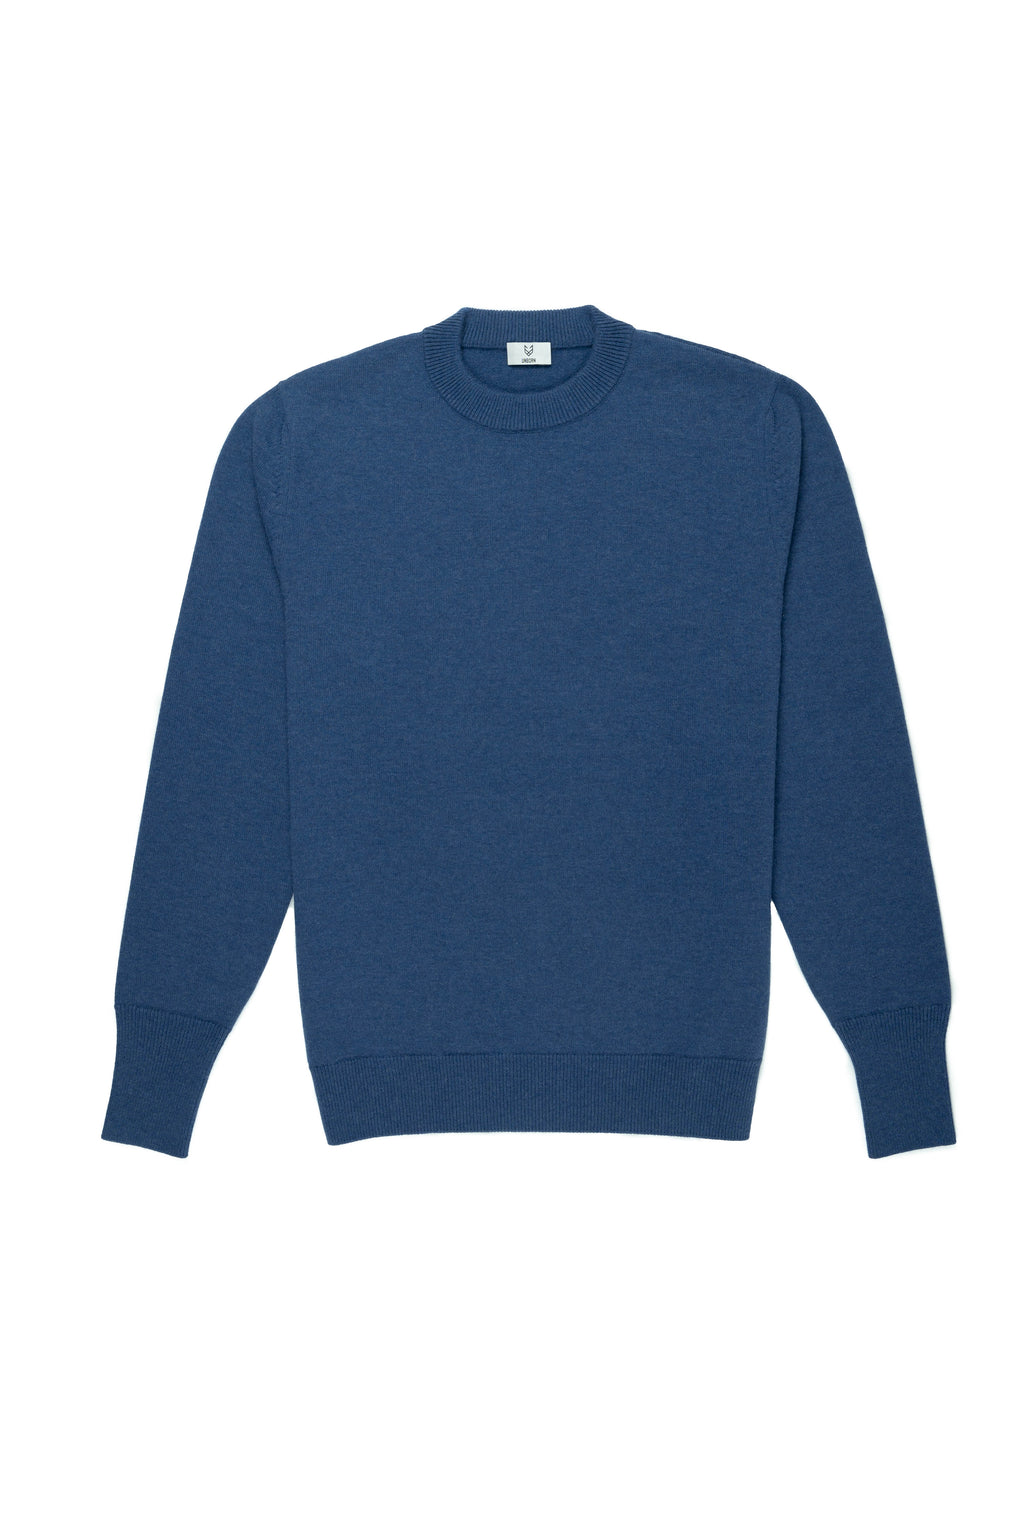 Single Jersey Merino Sweater